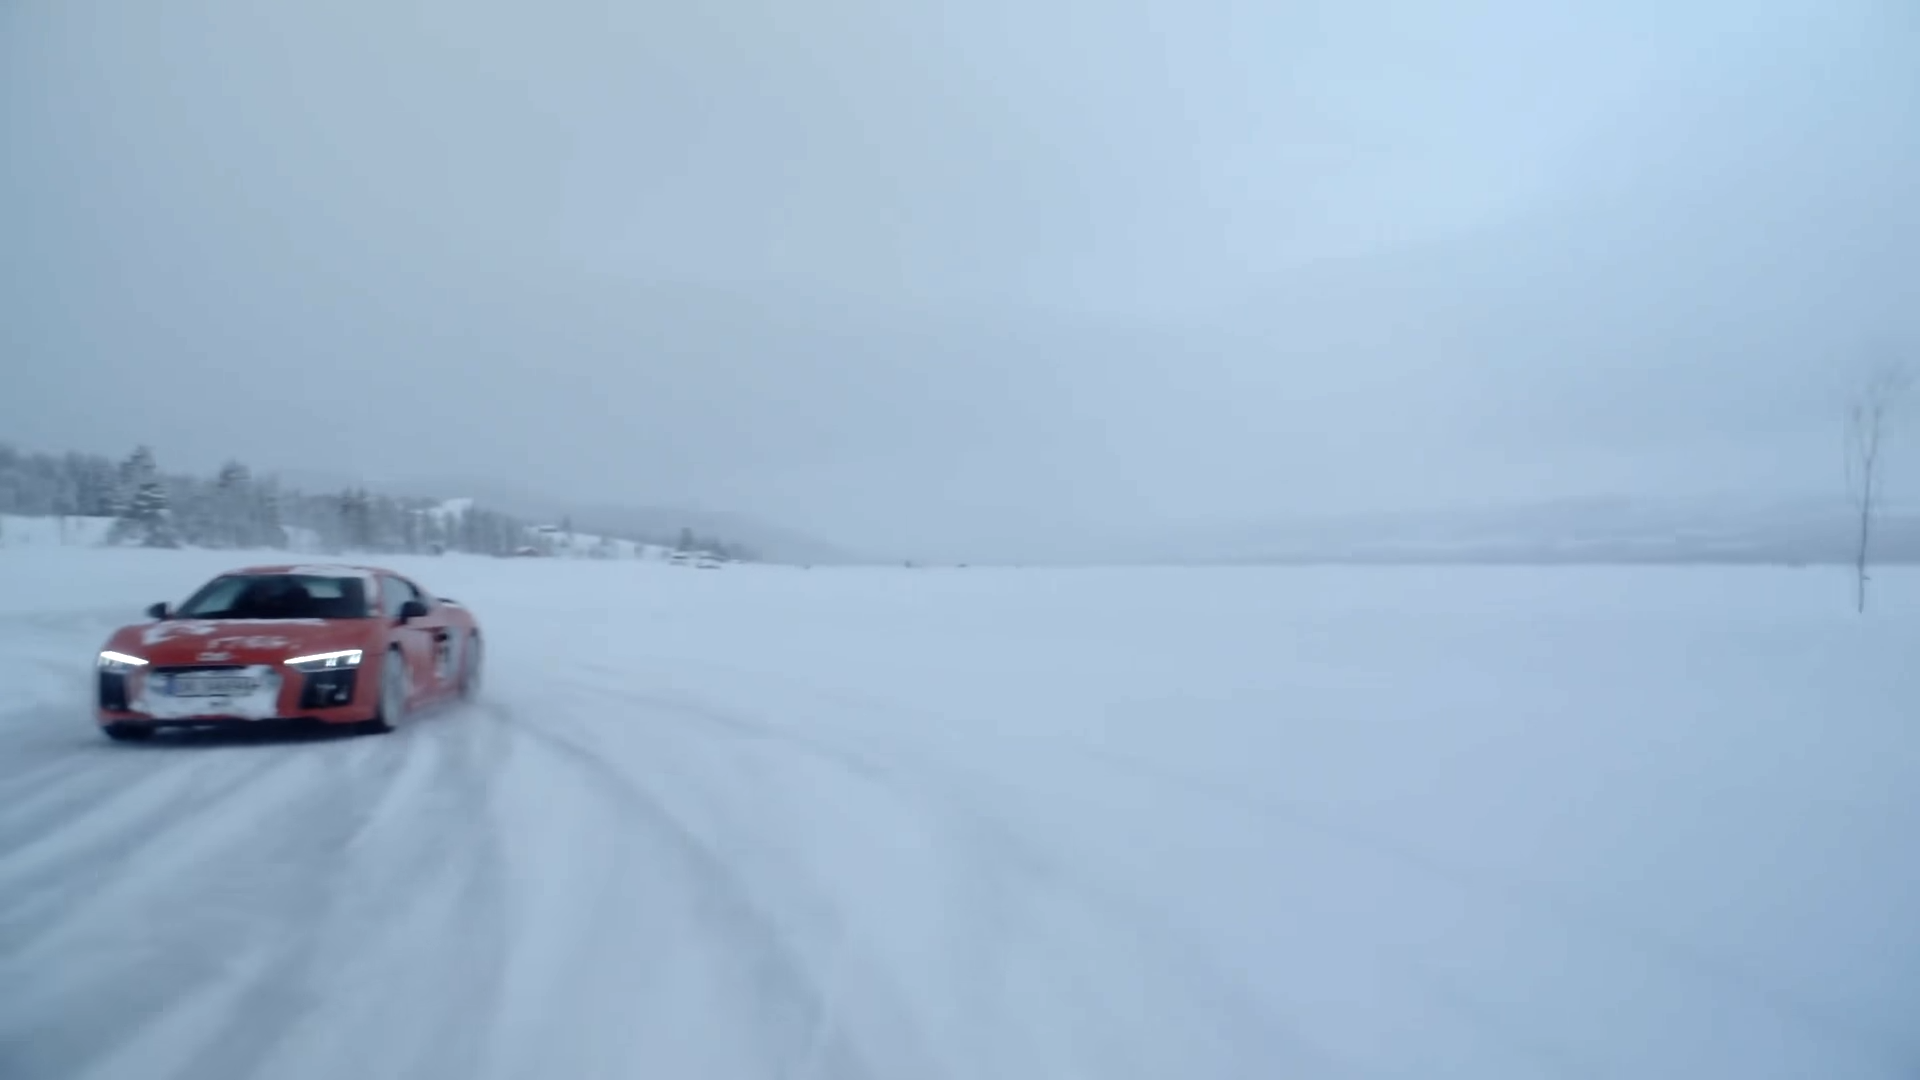 VIDEO Audi R8 V10 snow drifts with other supercars